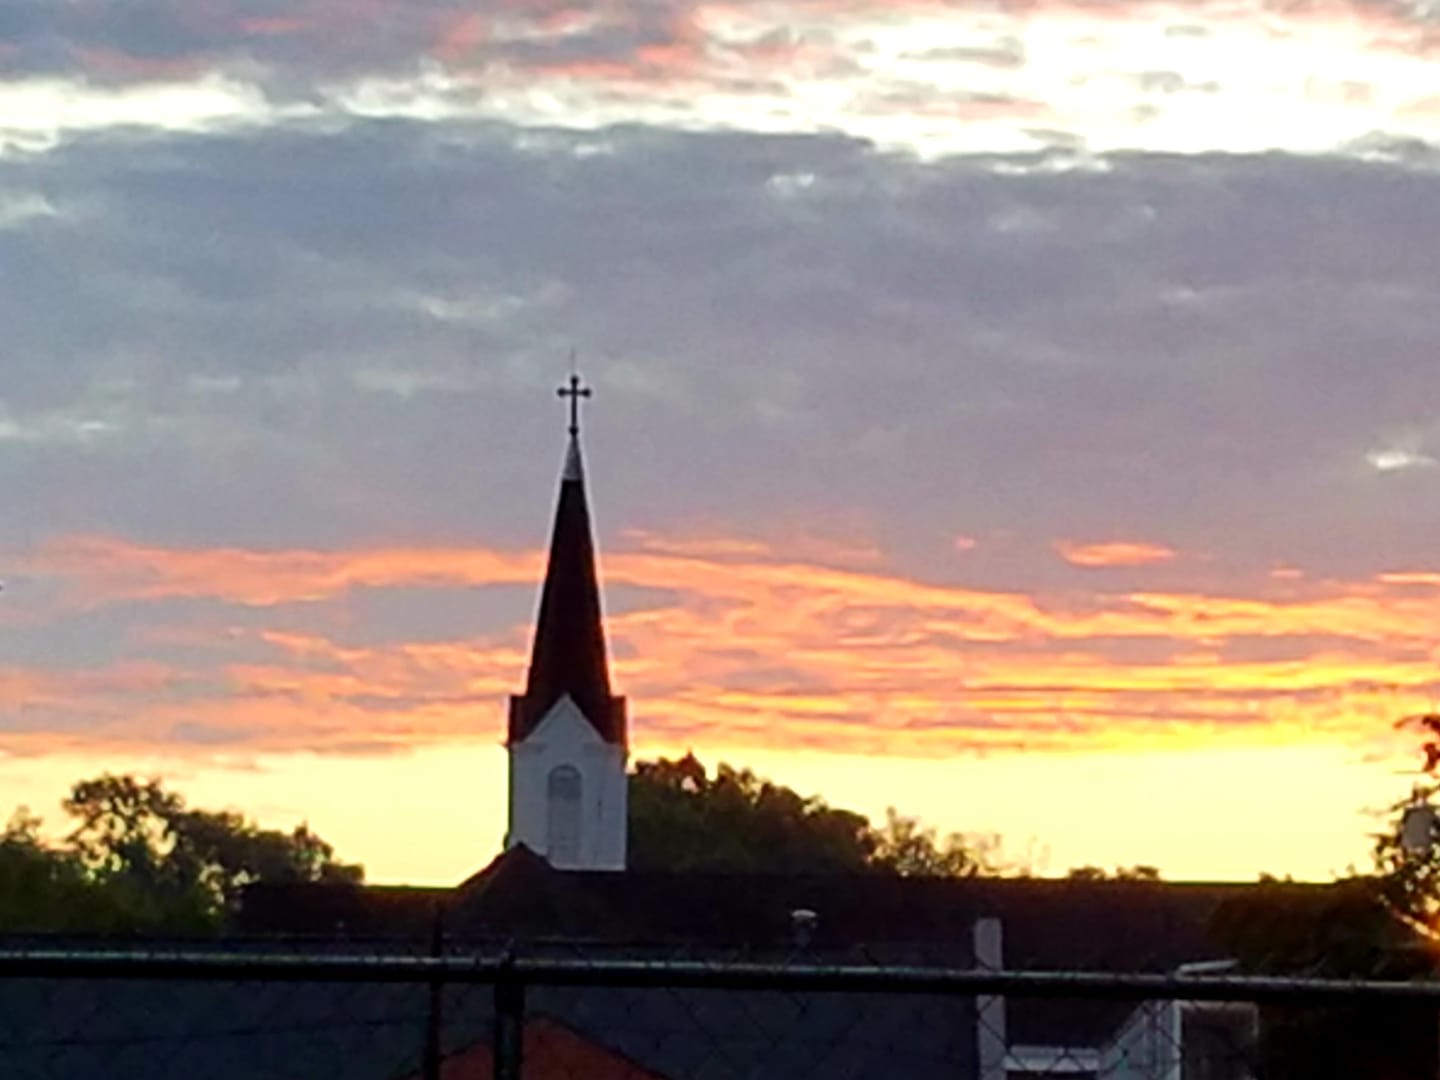 Submitted by:  Sammy Trombatore   Location:  Hammond, Louisiana   Sunrise over Holy Ghost.